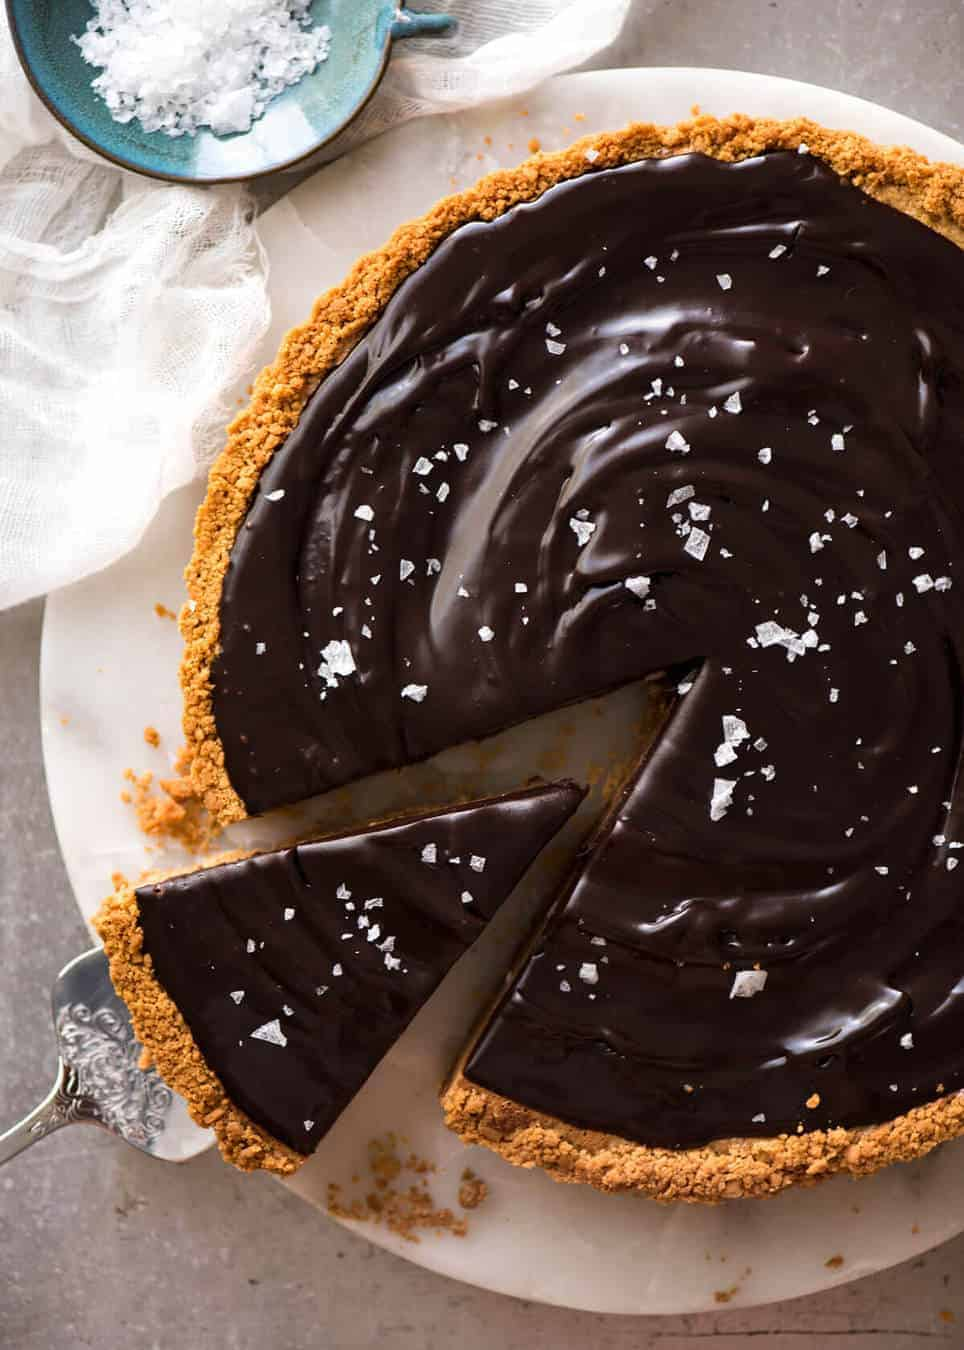 A sinfully decadent Salted Caramel Tart with a creamy soft salted caramel filling topped with luxurious chocolate ganache. Just SIX ingredients! www.recipetineats.com